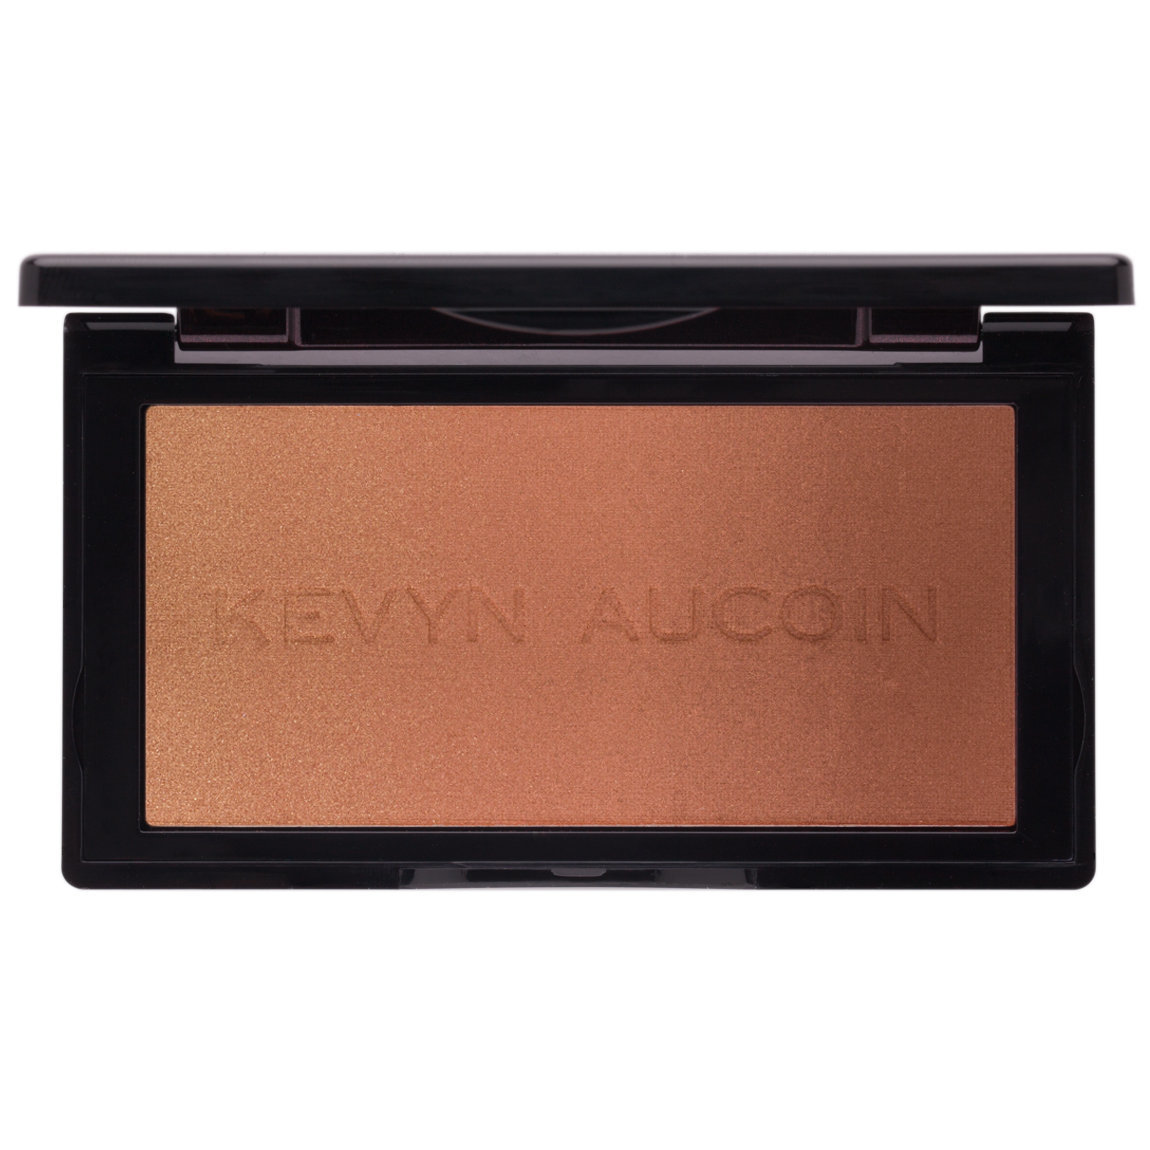 Kevyn Aucoin The Neo-Bronzer Sundown Deep product smear.